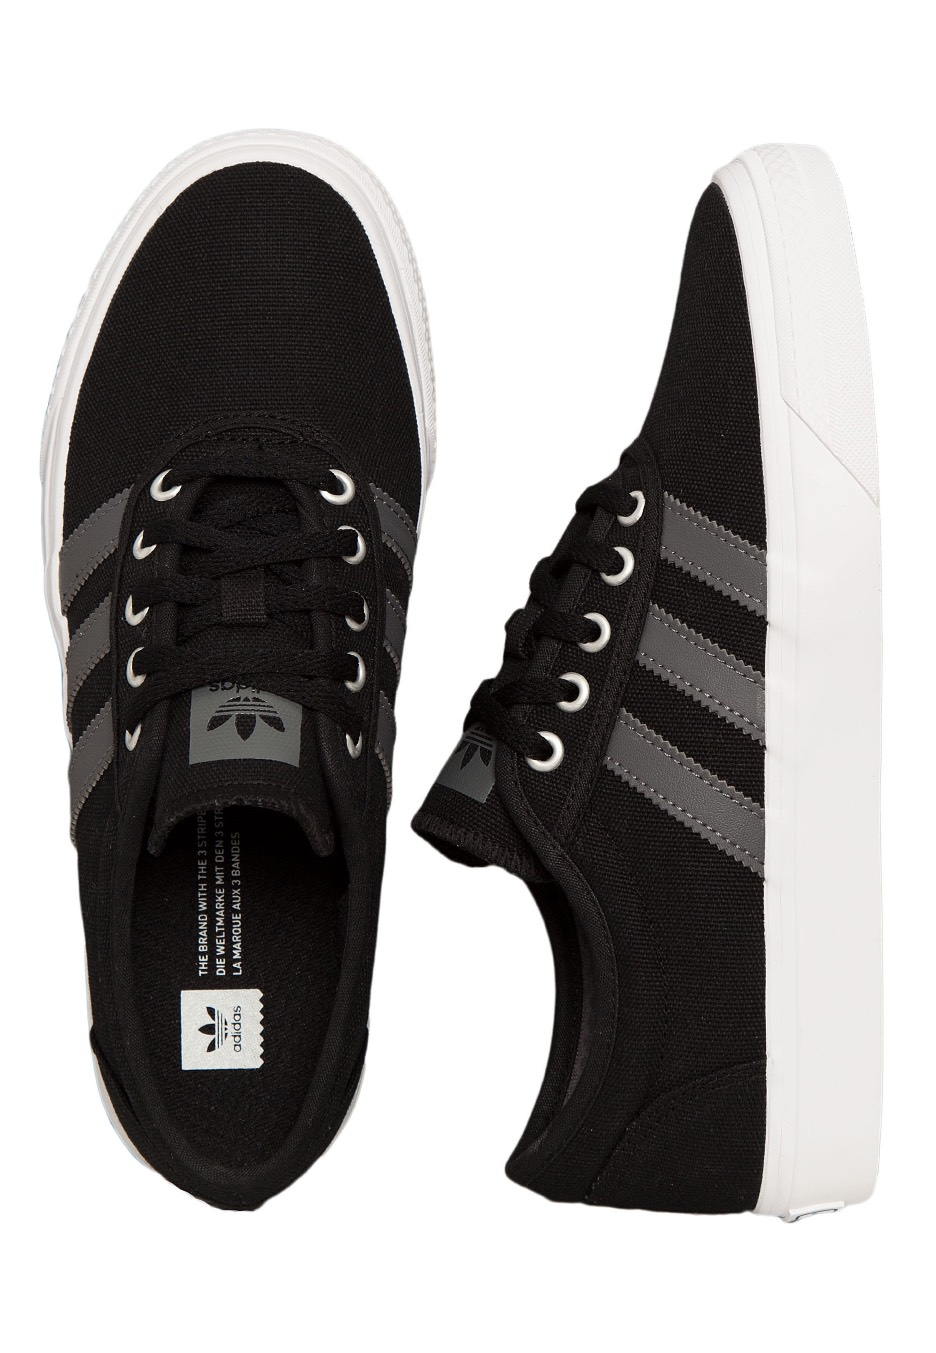 competitive price 52d6d 0c165 Adidas - Adi-Ease Core BlackGrey FourFtwr White - Girl Shoes -  Impericon.com UK